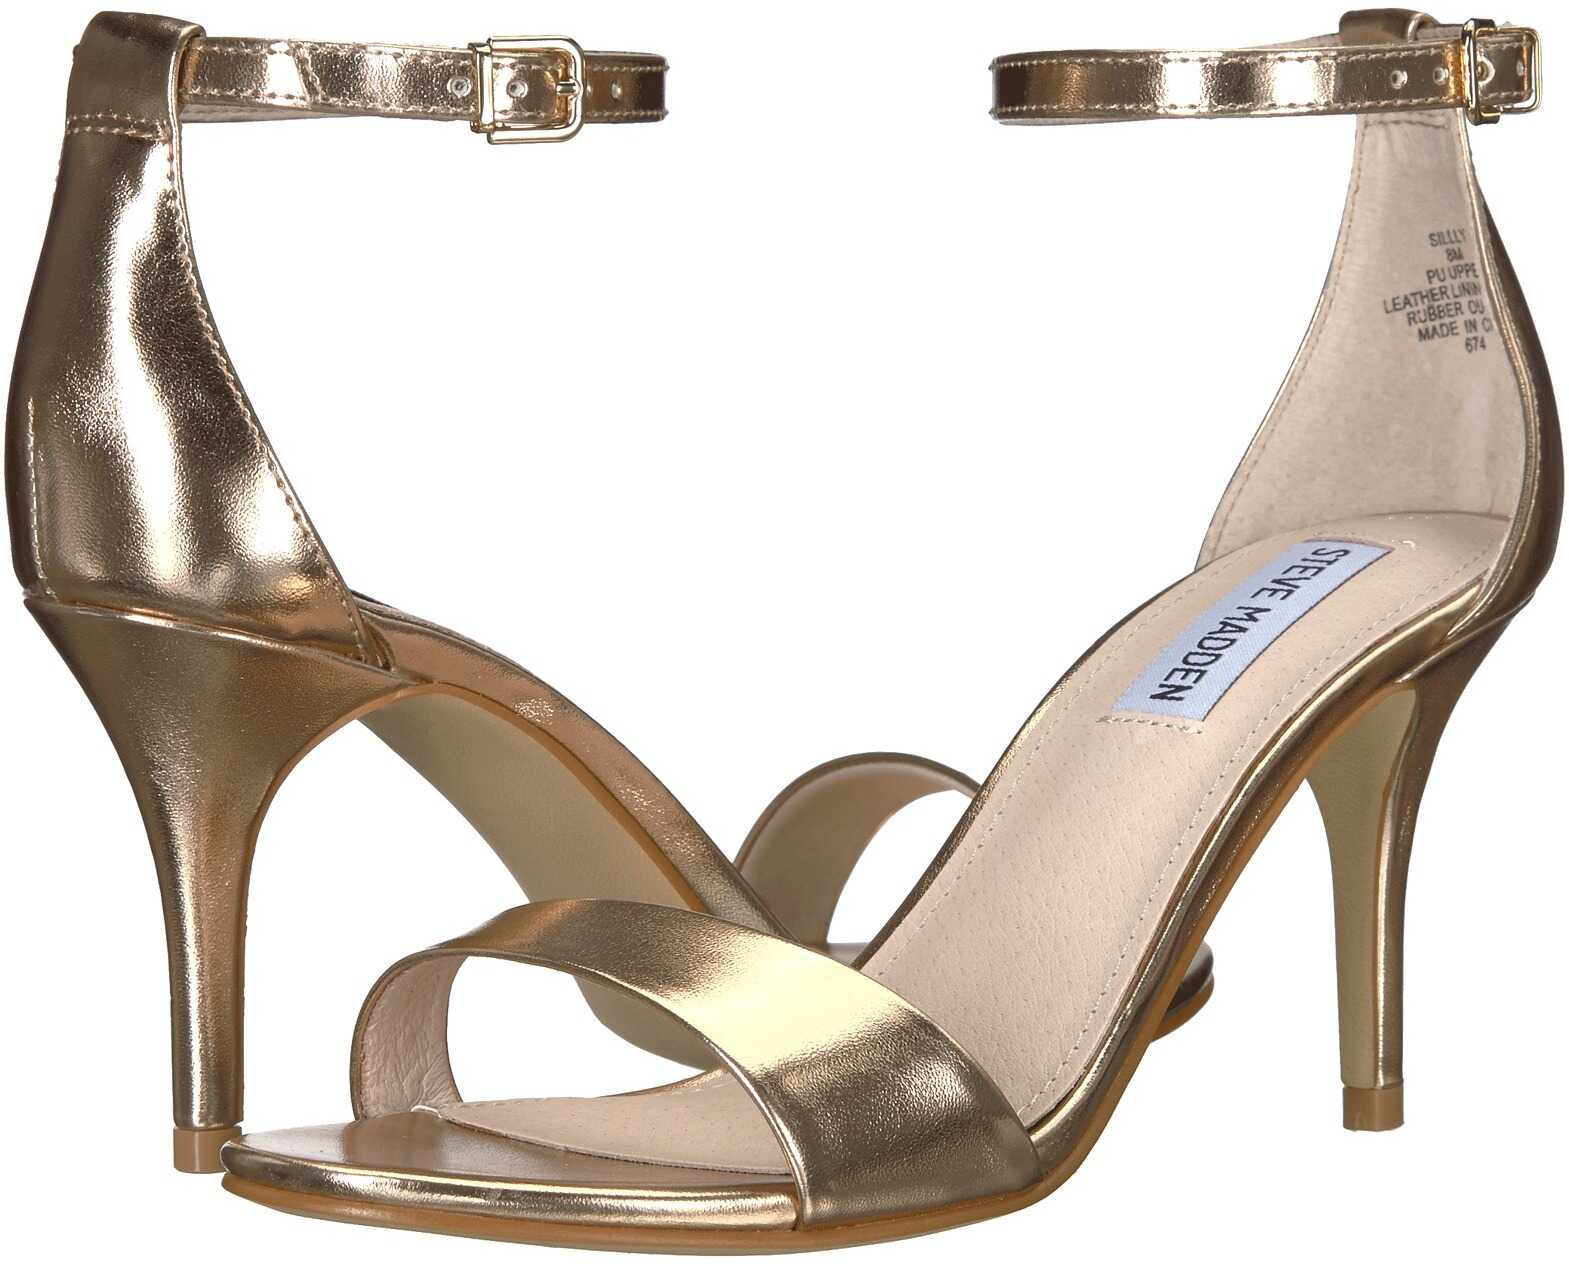 Steve Madden Exclusive - Sillly Sandal Rose Gold